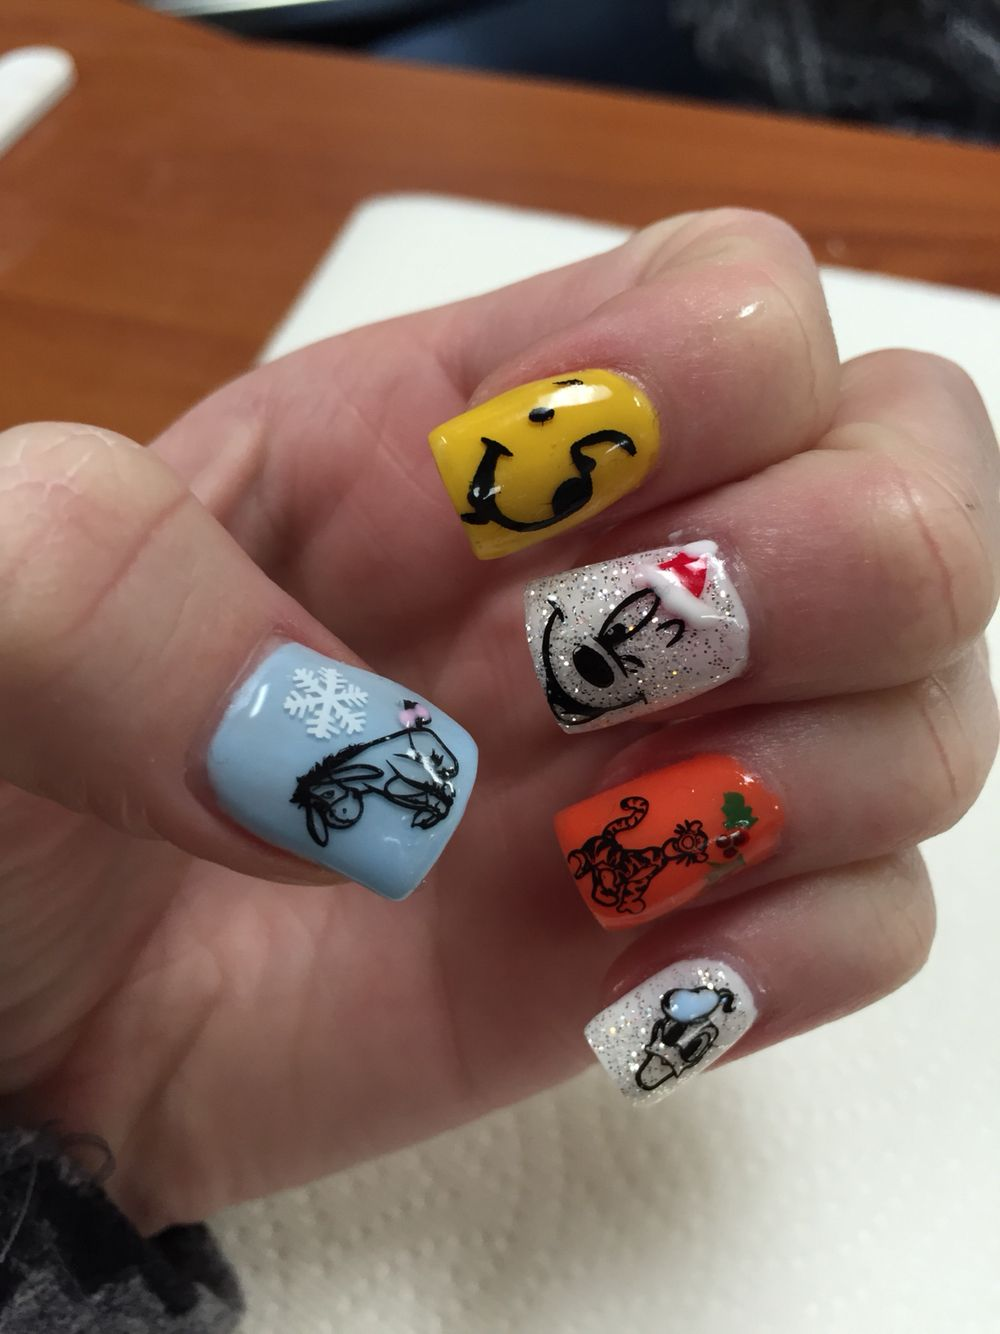 Disney nails | Nails by Janee at A Wild Hair Salon Reno, NV ...